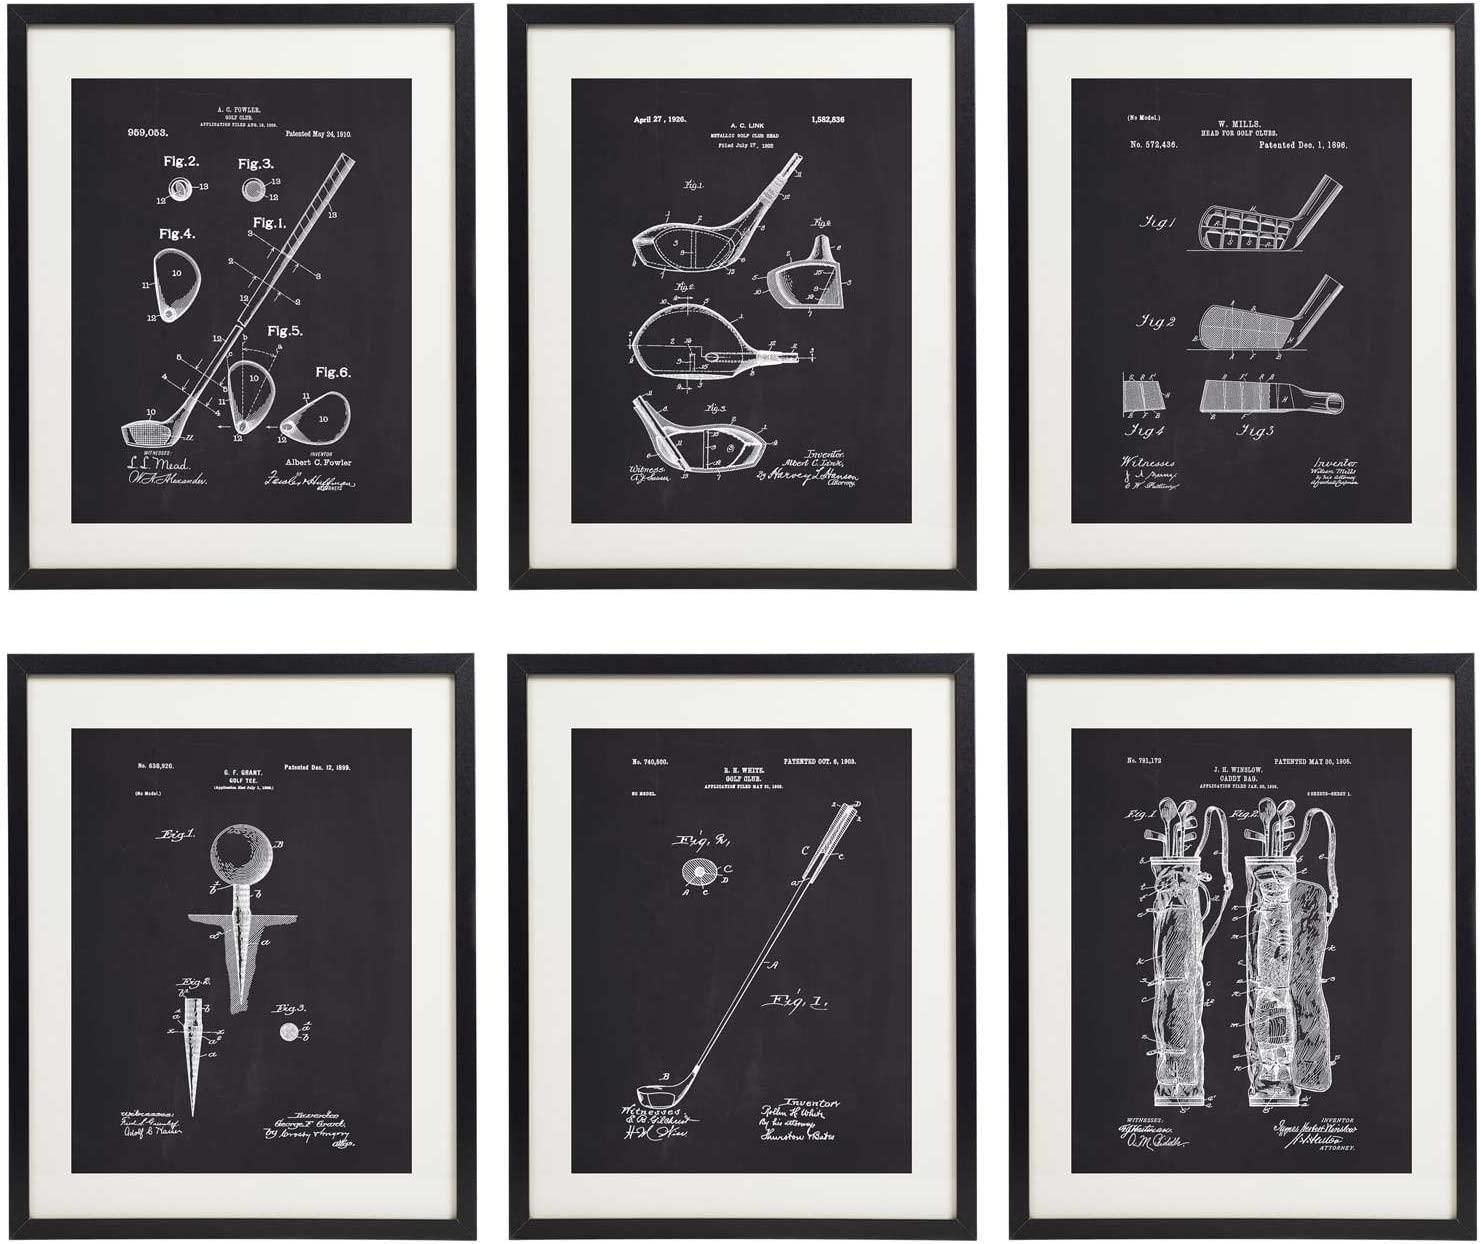 IDIOPIX Golf Patent Prints Home Decor Art Print Set of 6 Prints UNFRAMED No.1